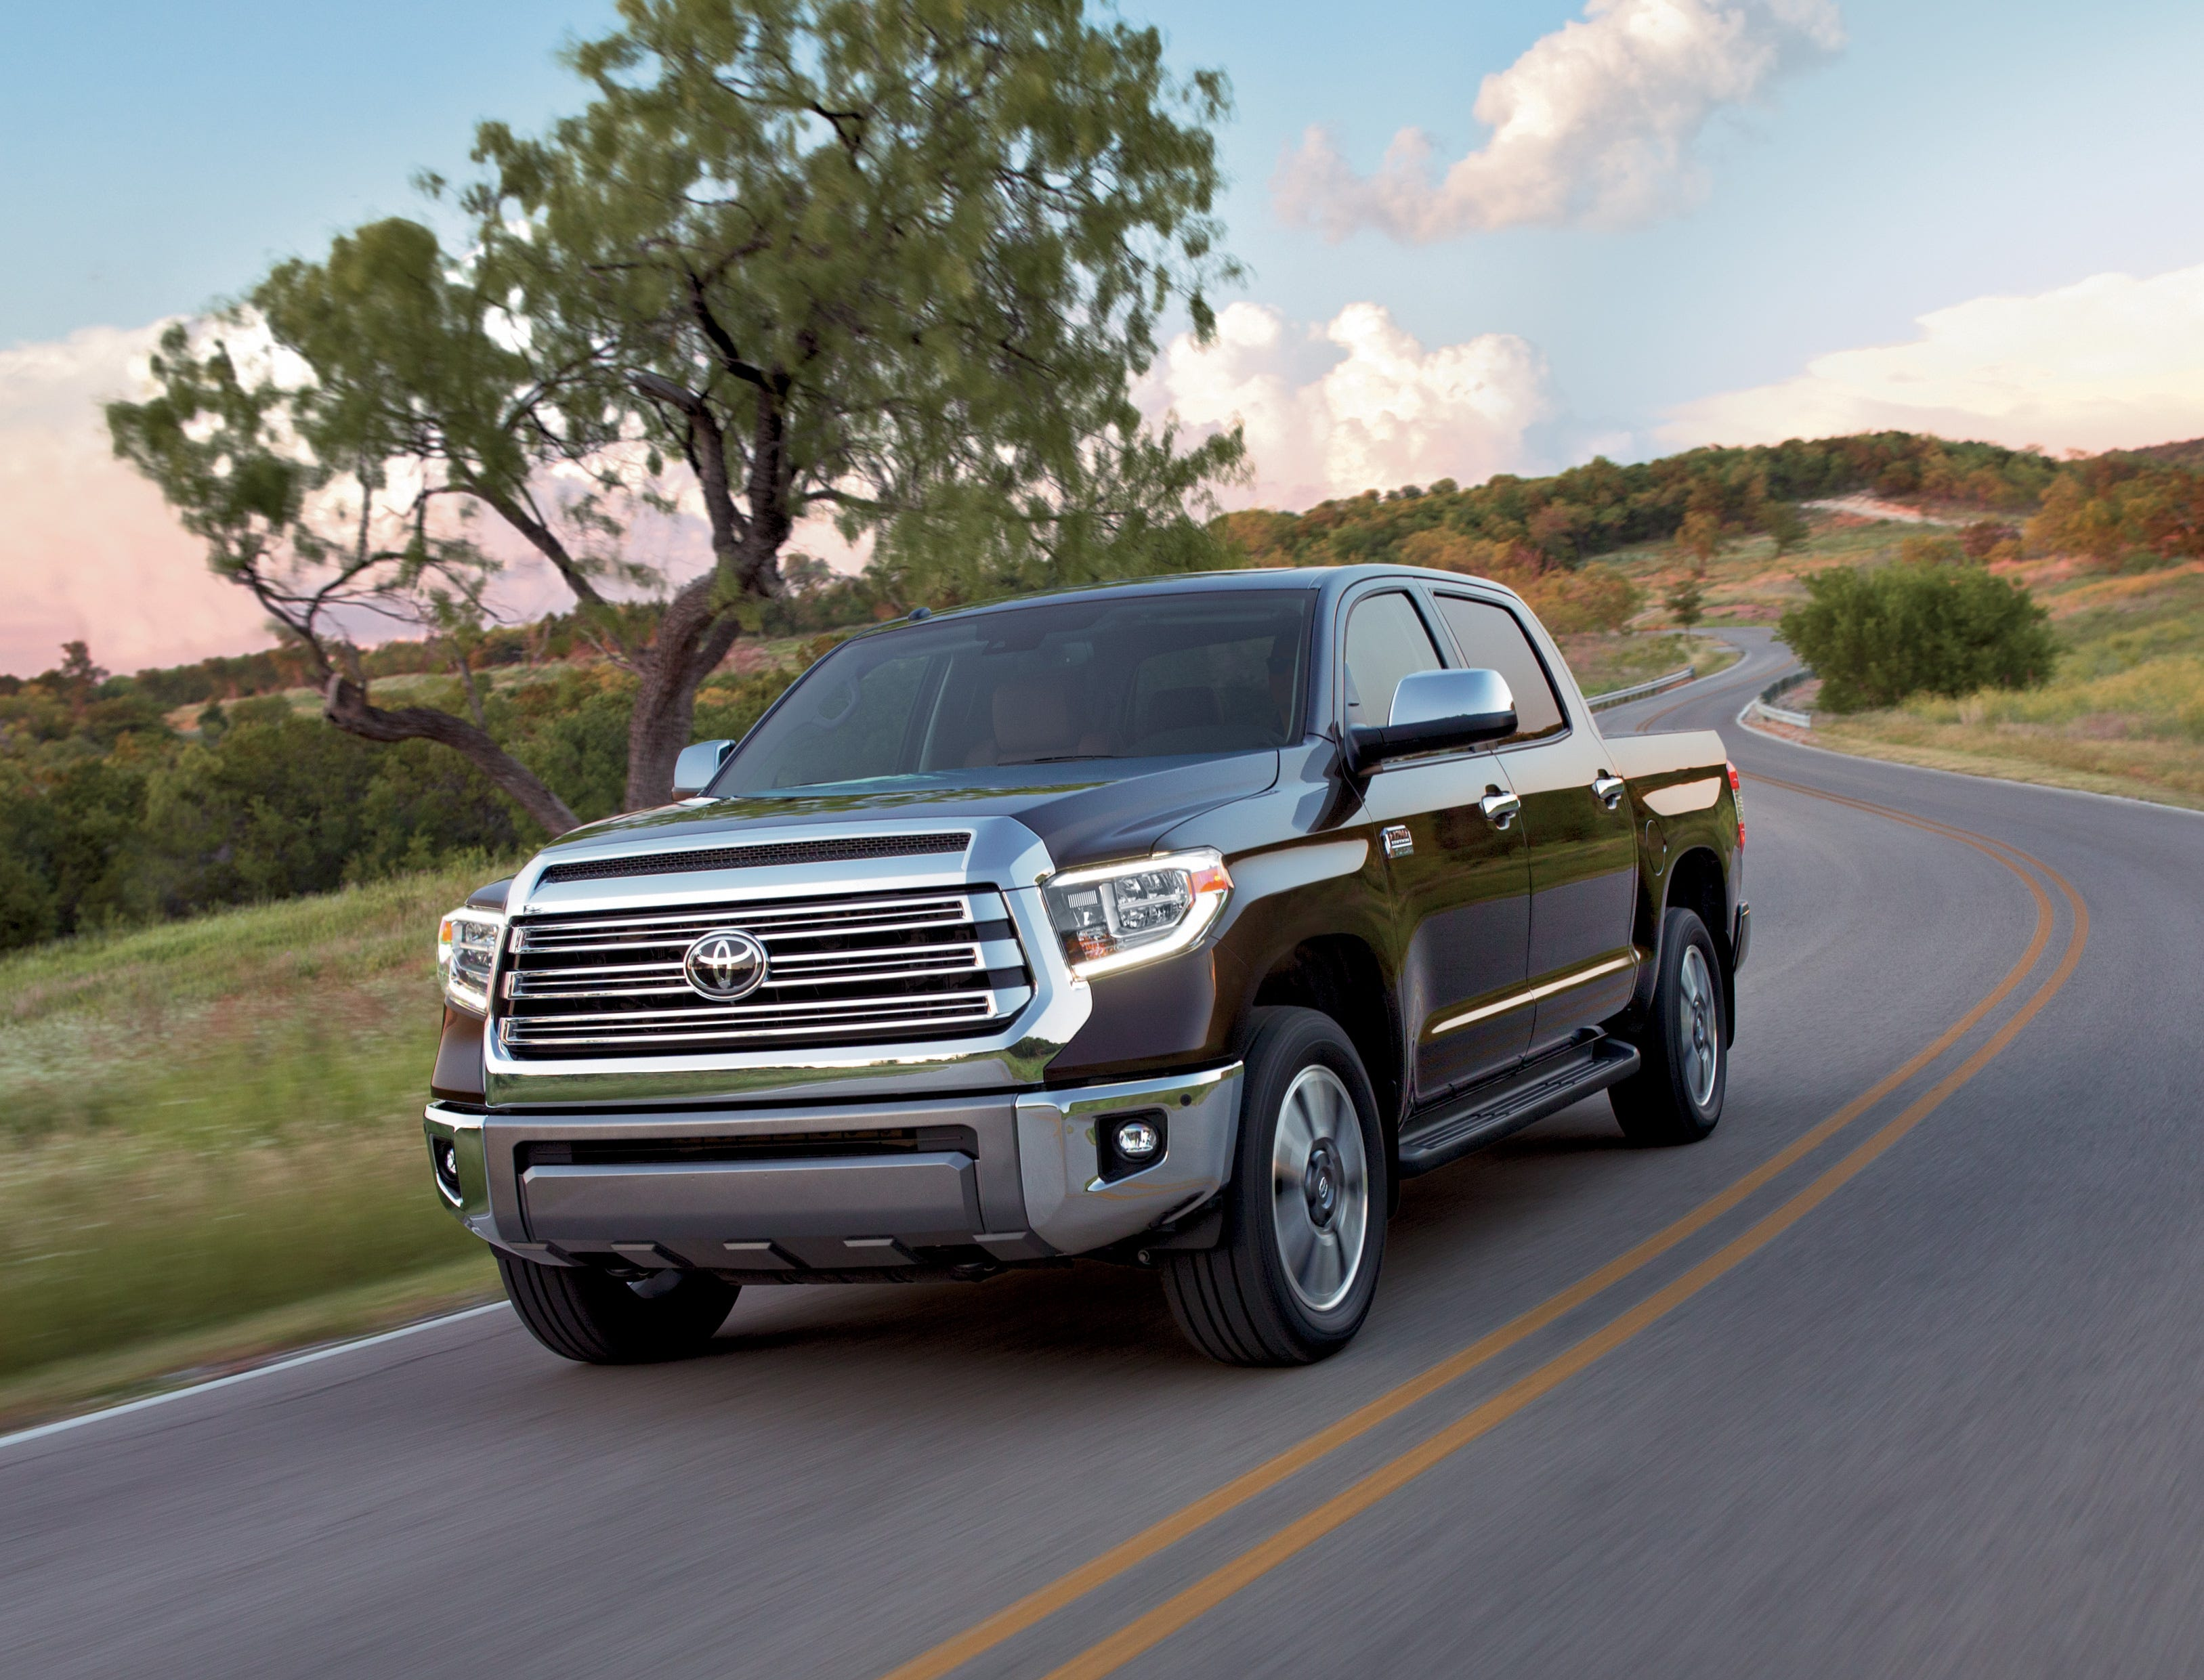 Pengers In Newer Trucks Are At Higher Risk Of Injury Or Shows Latest Crash Test